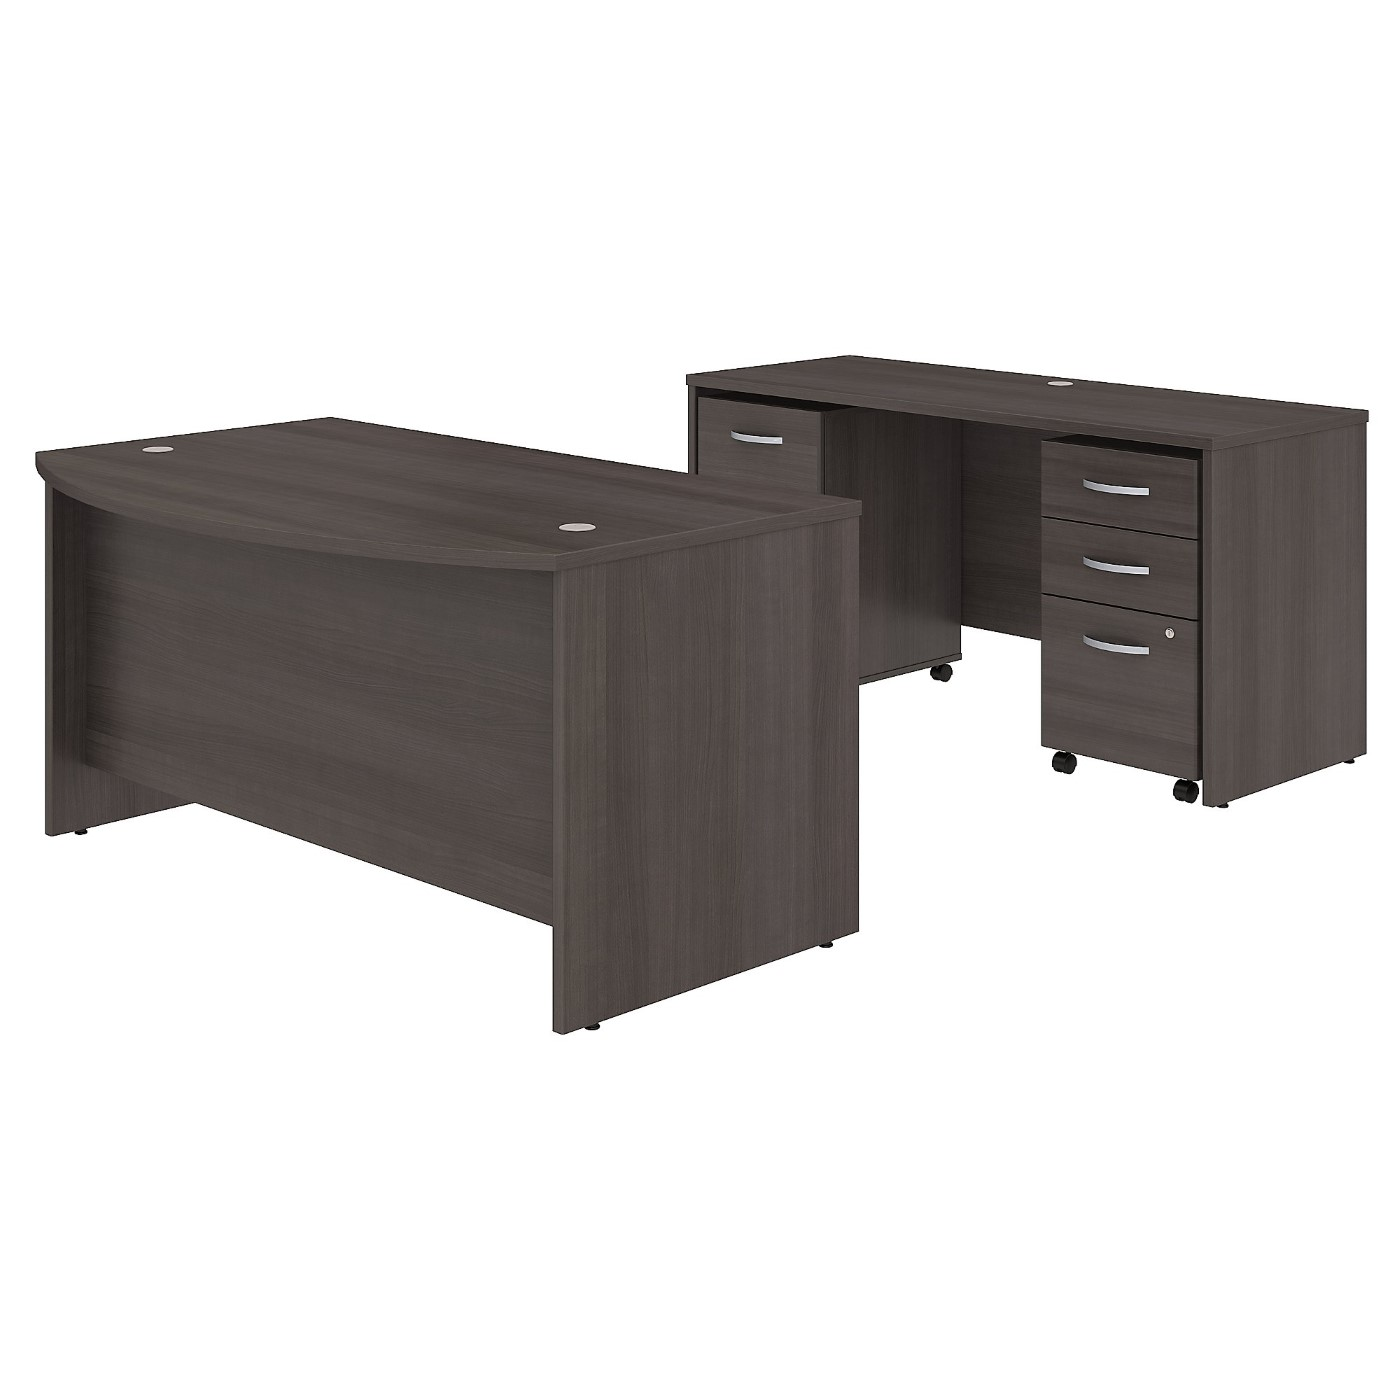 BUSH BUSINESS FURNITURE STUDIO C 60W X 36D BOW FRONT DESK AND CREDENZA WITH MOBILE FILE CABINETS. FREE SHIPPING